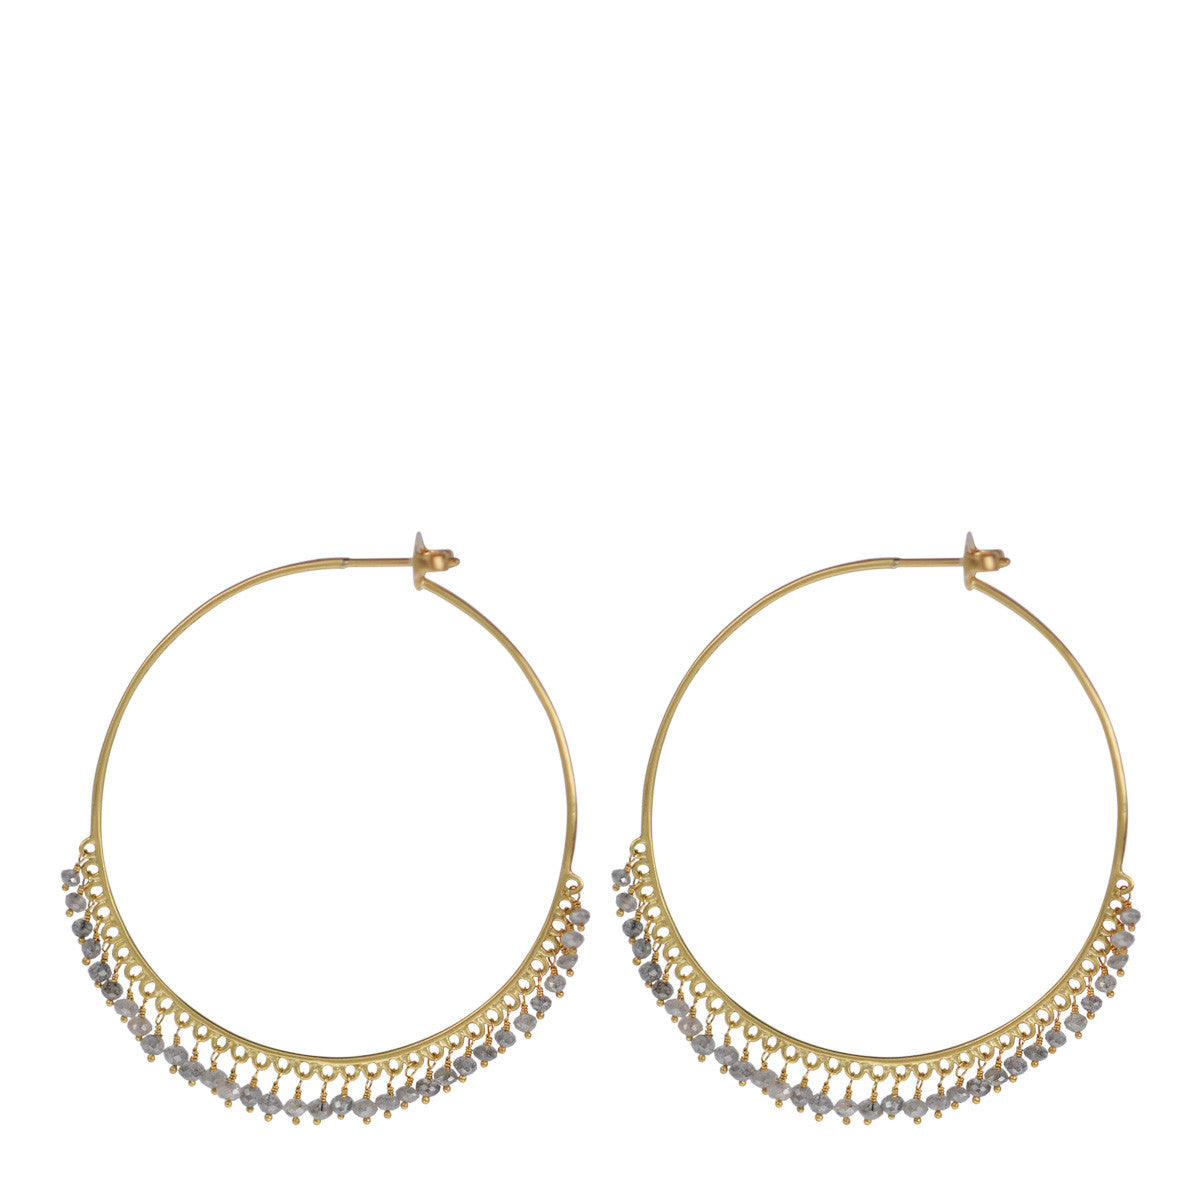 18K Gold Large Grey Diamond Endless Hoop Earrings